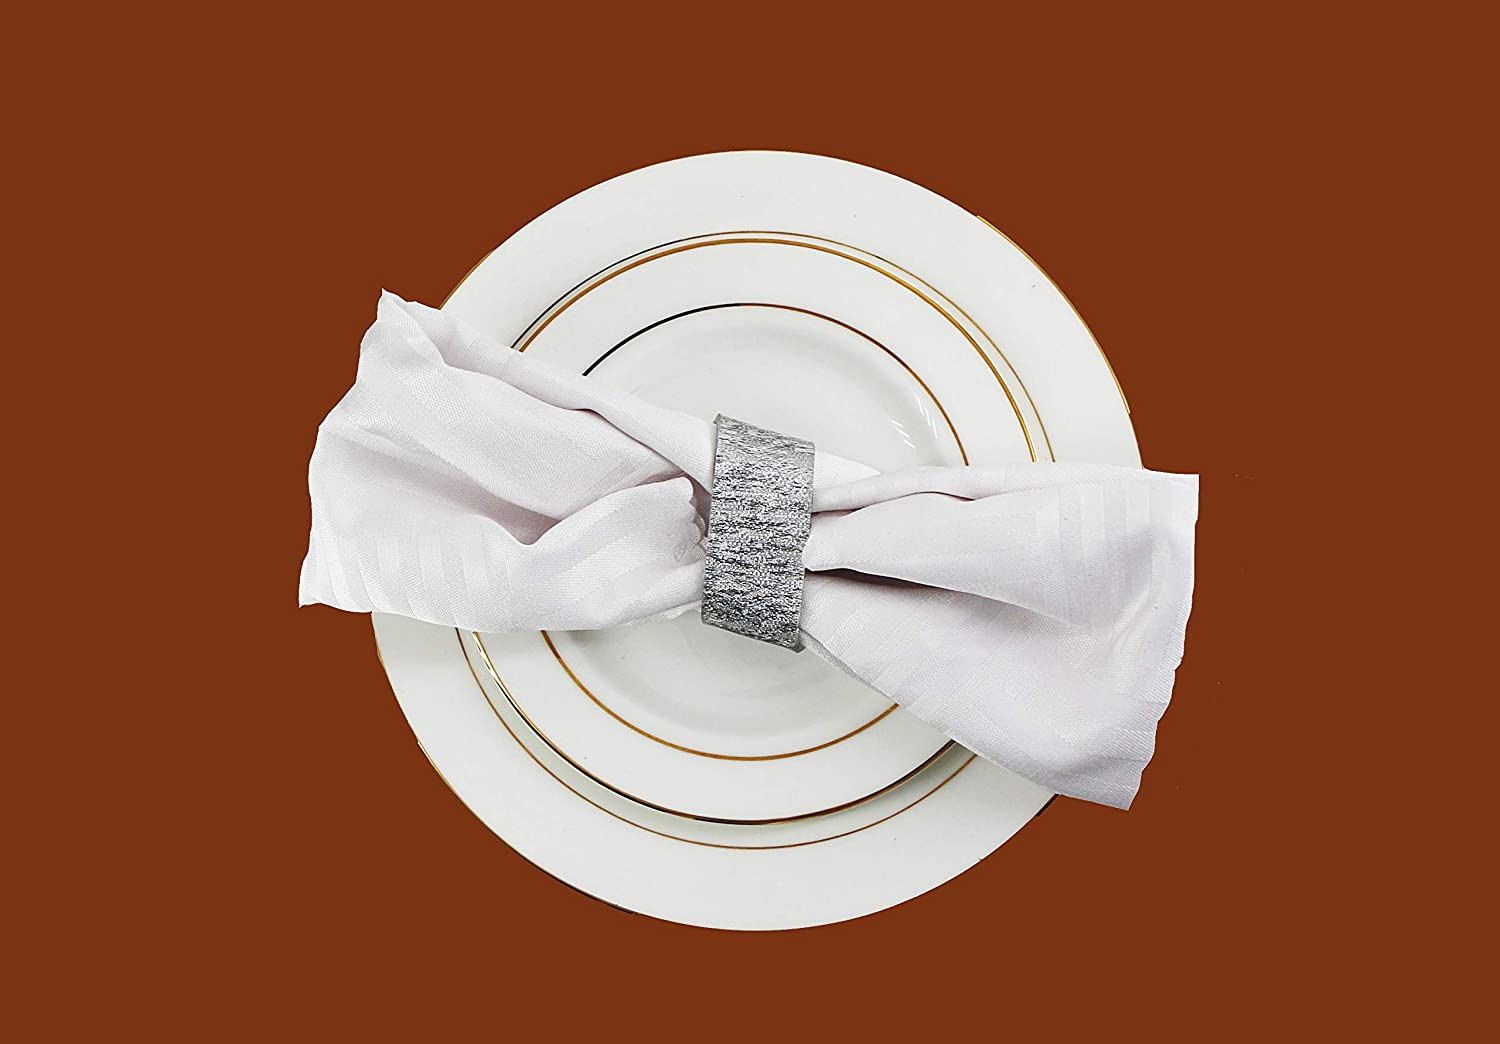 DANXYN Durable Quality Silver Acrylic Napkin Rings Set of 6